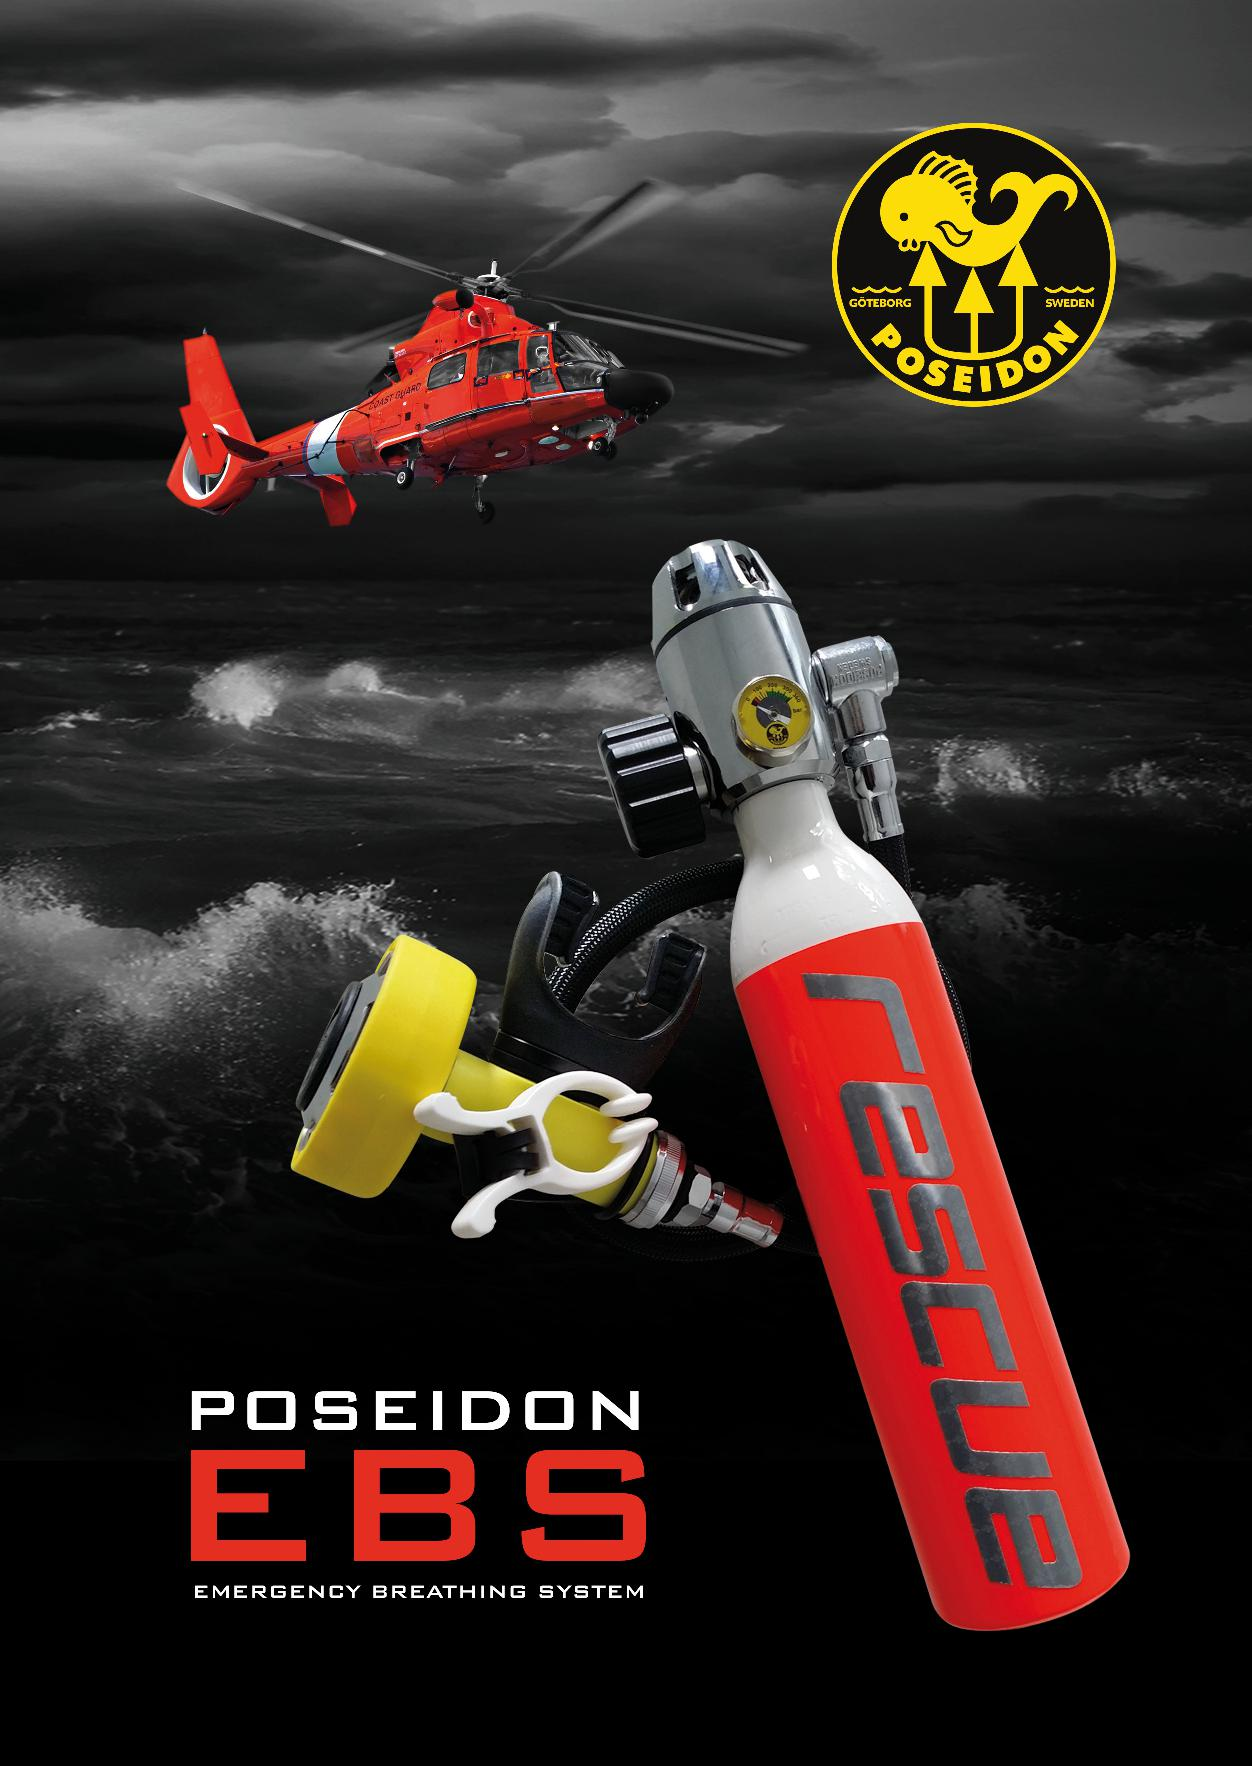 Poseidon Emergency Breathing System